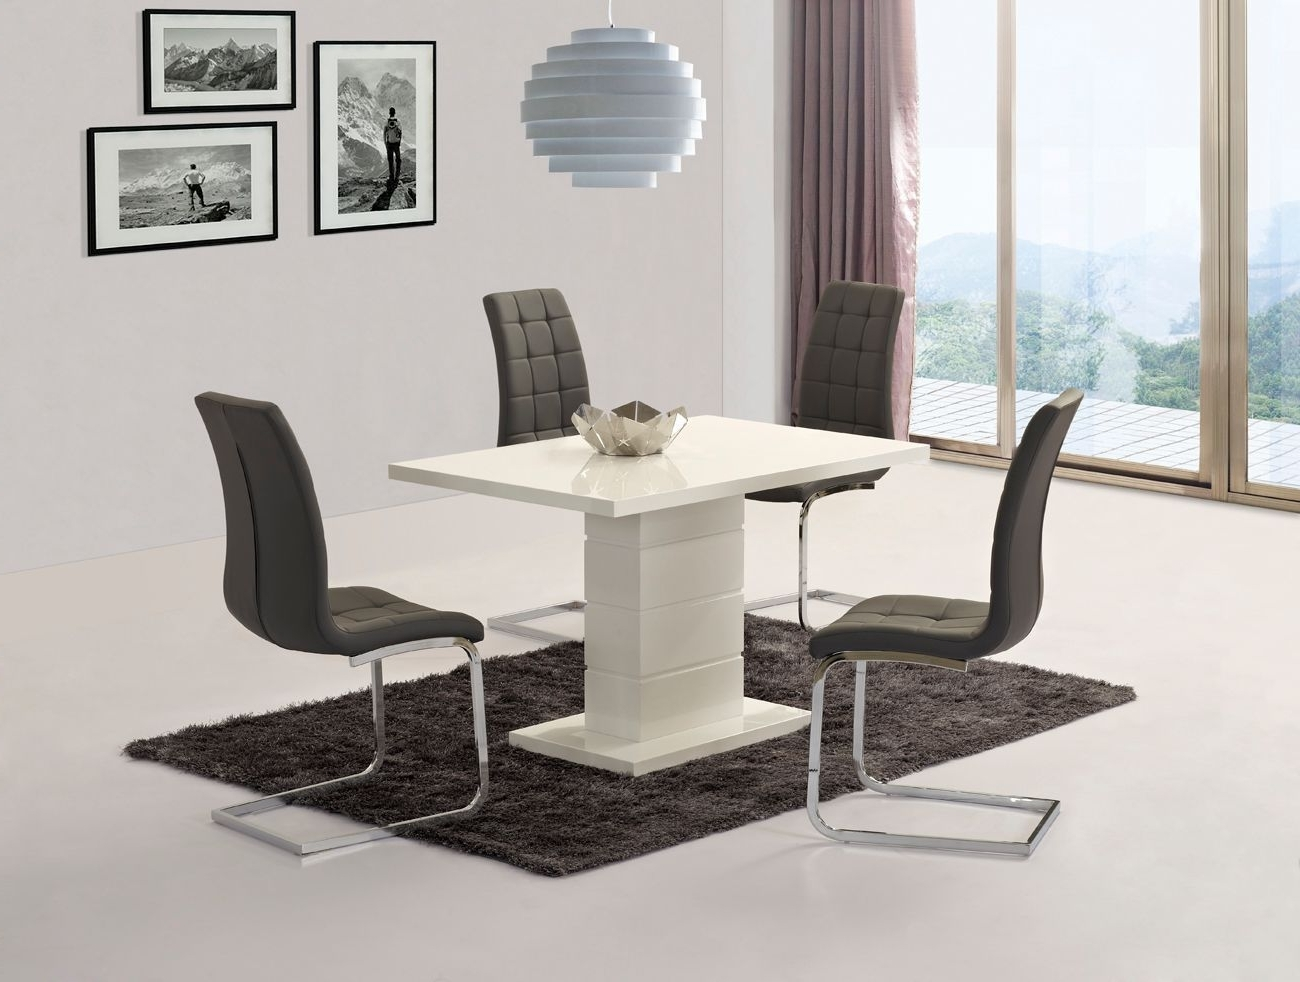 White High Gloss Dining Set With 6 Grey Chairs – Homegenies Pertaining To Popular White High Gloss Dining Chairs (View 4 of 25)